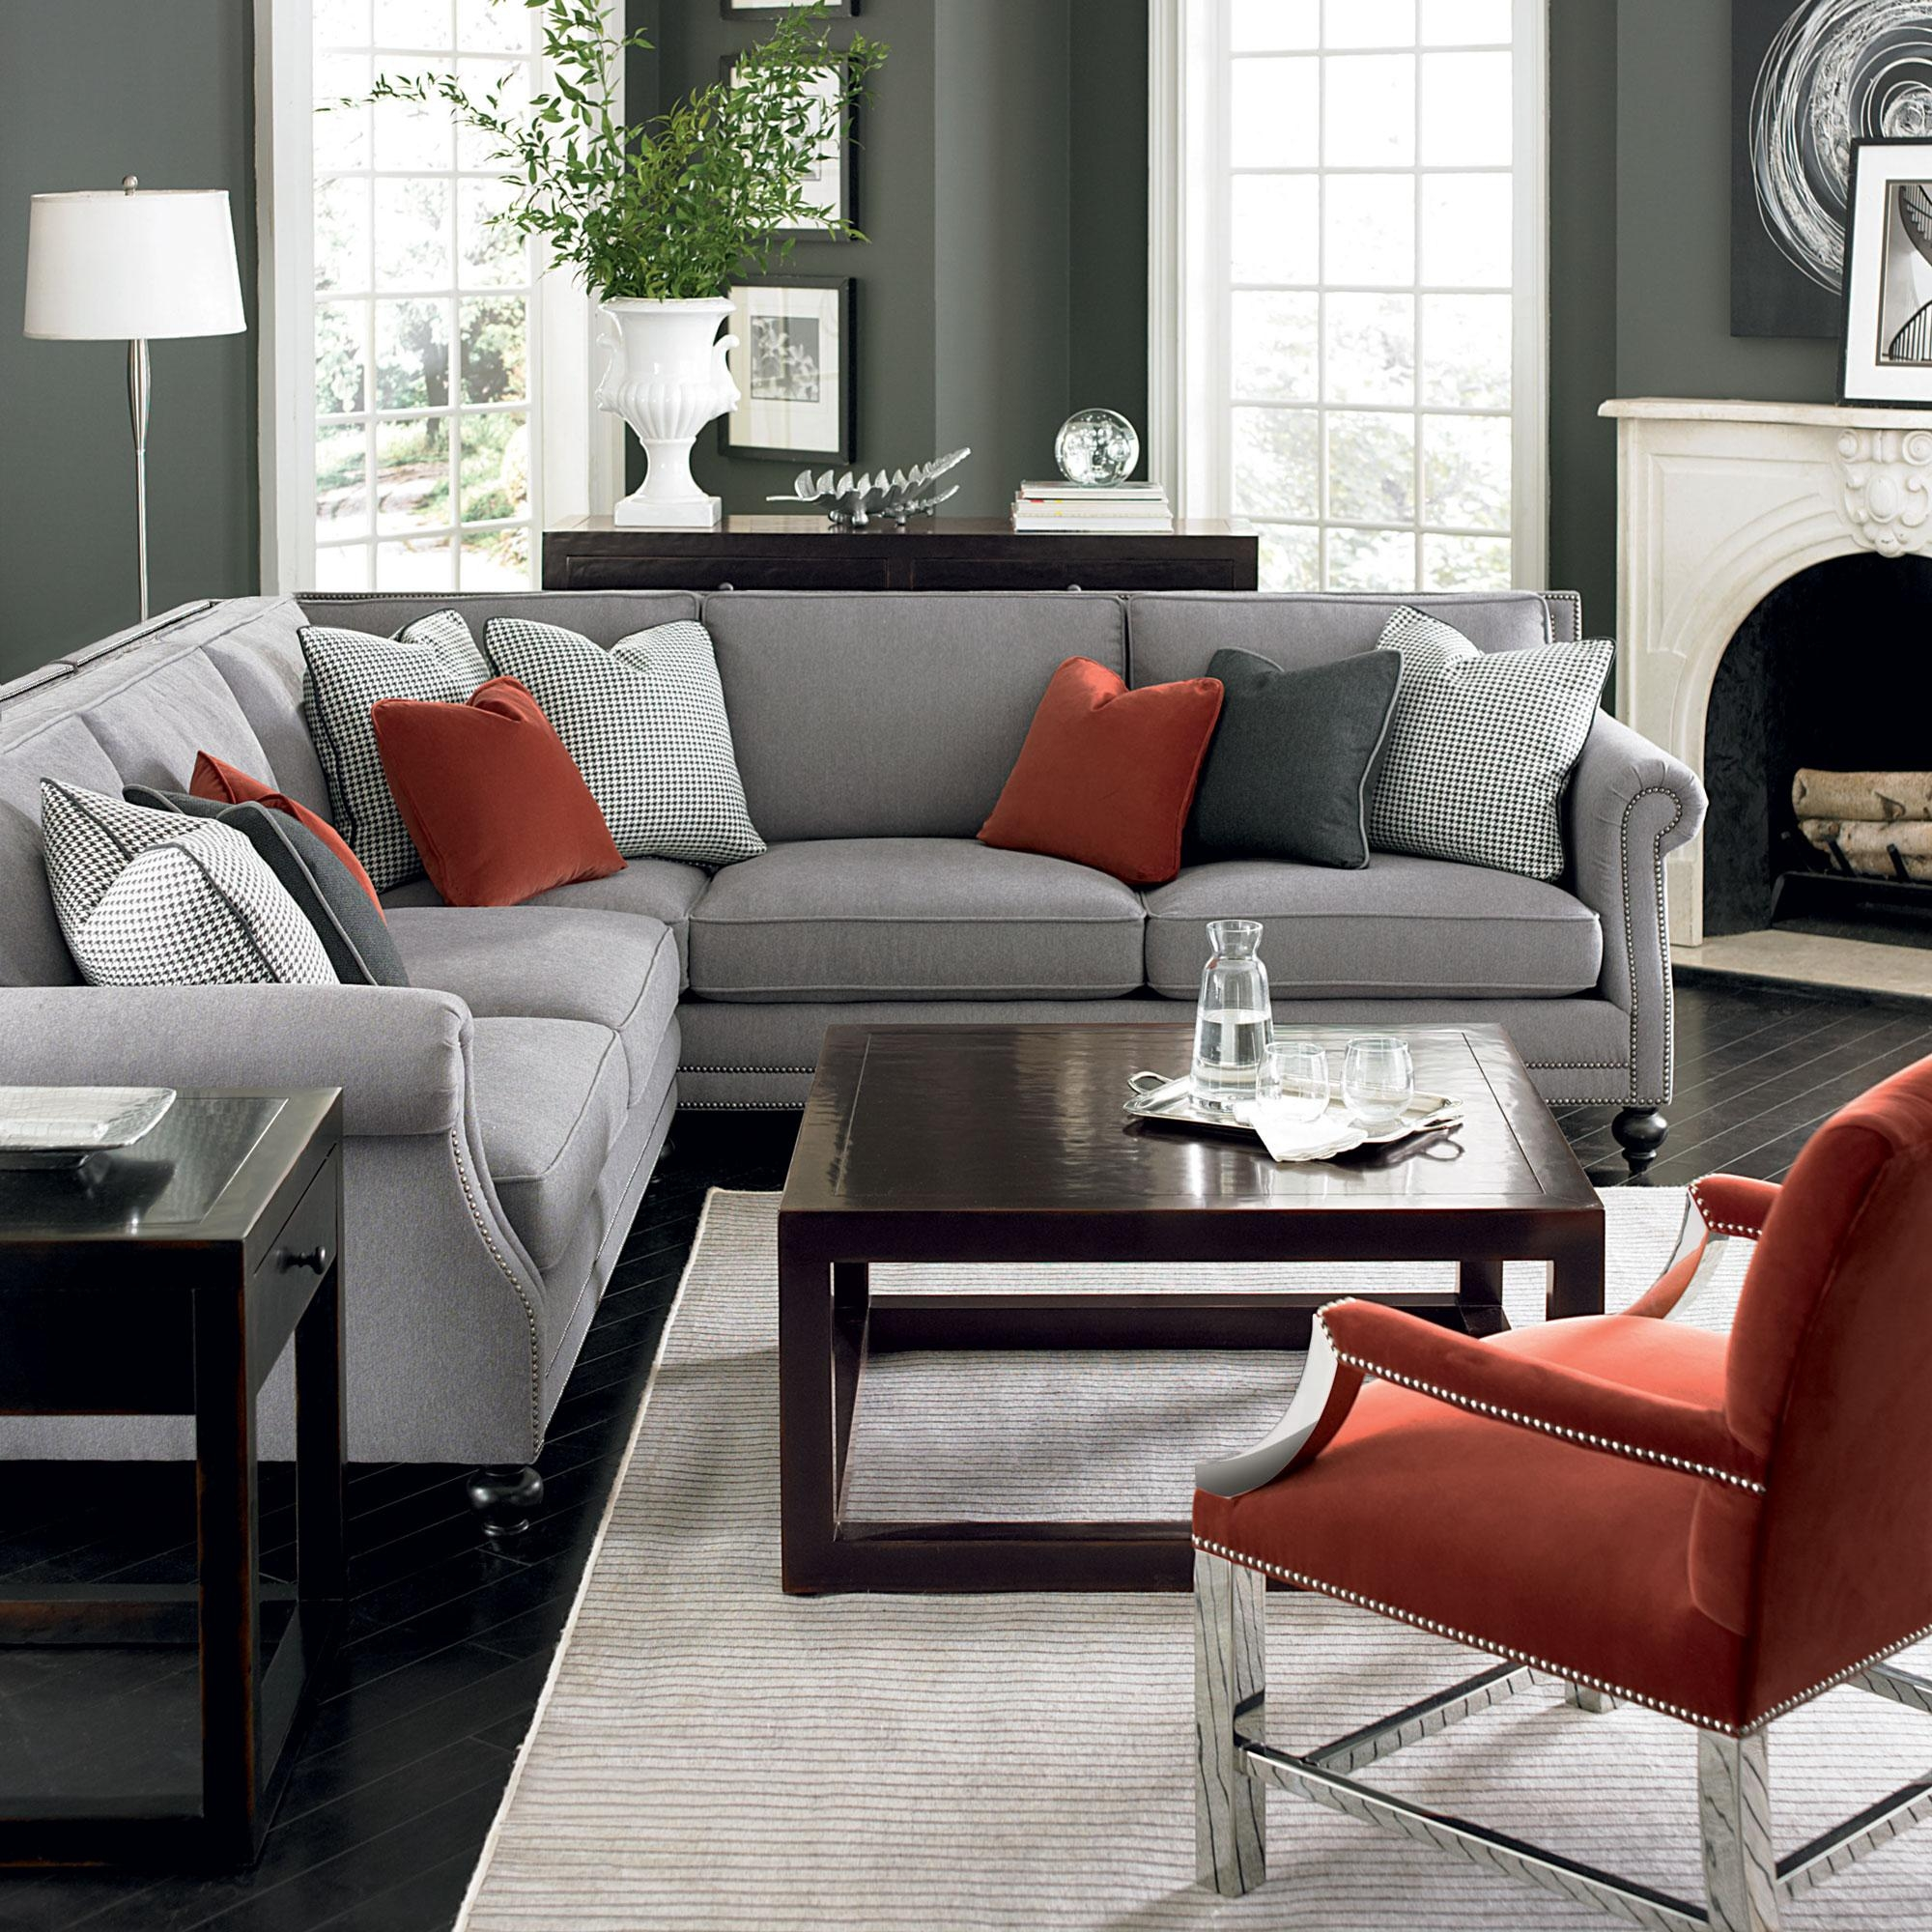 Piedmont Sofa With Ideas Gallery 30070 | Kengire With Piedmont Sofas (View 6 of 20)